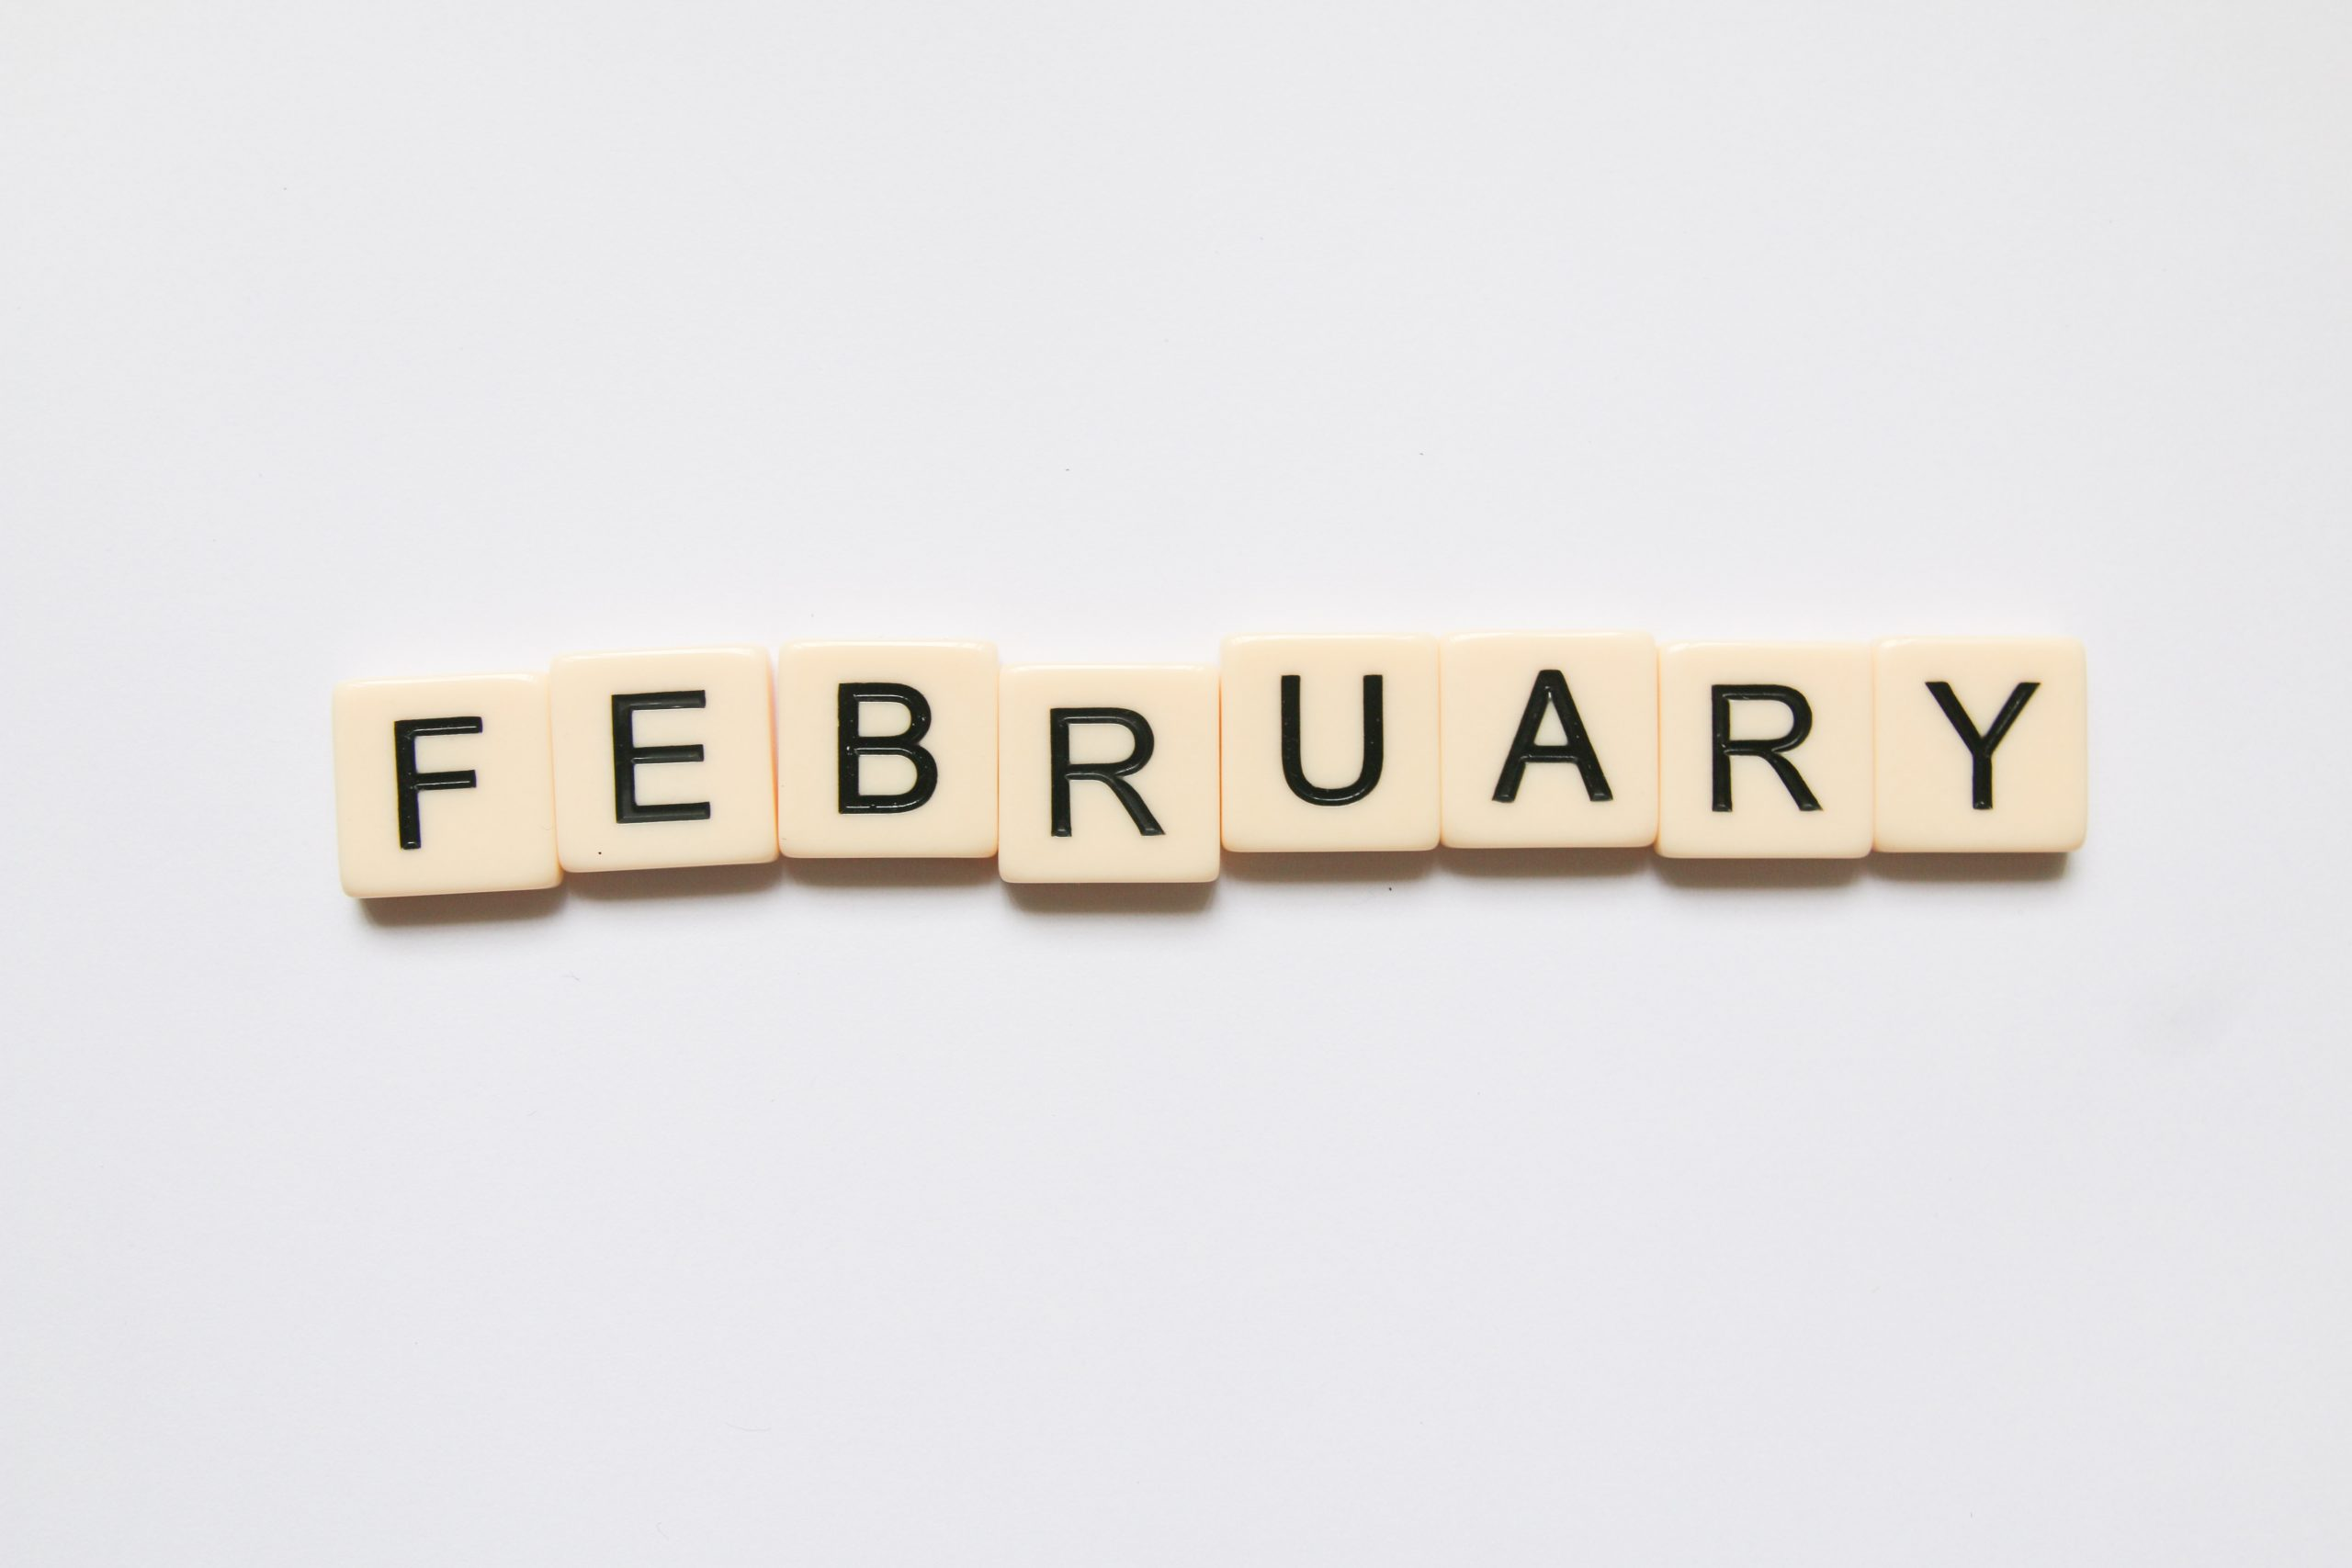 3 Non-Choral Activities my Choir does in February